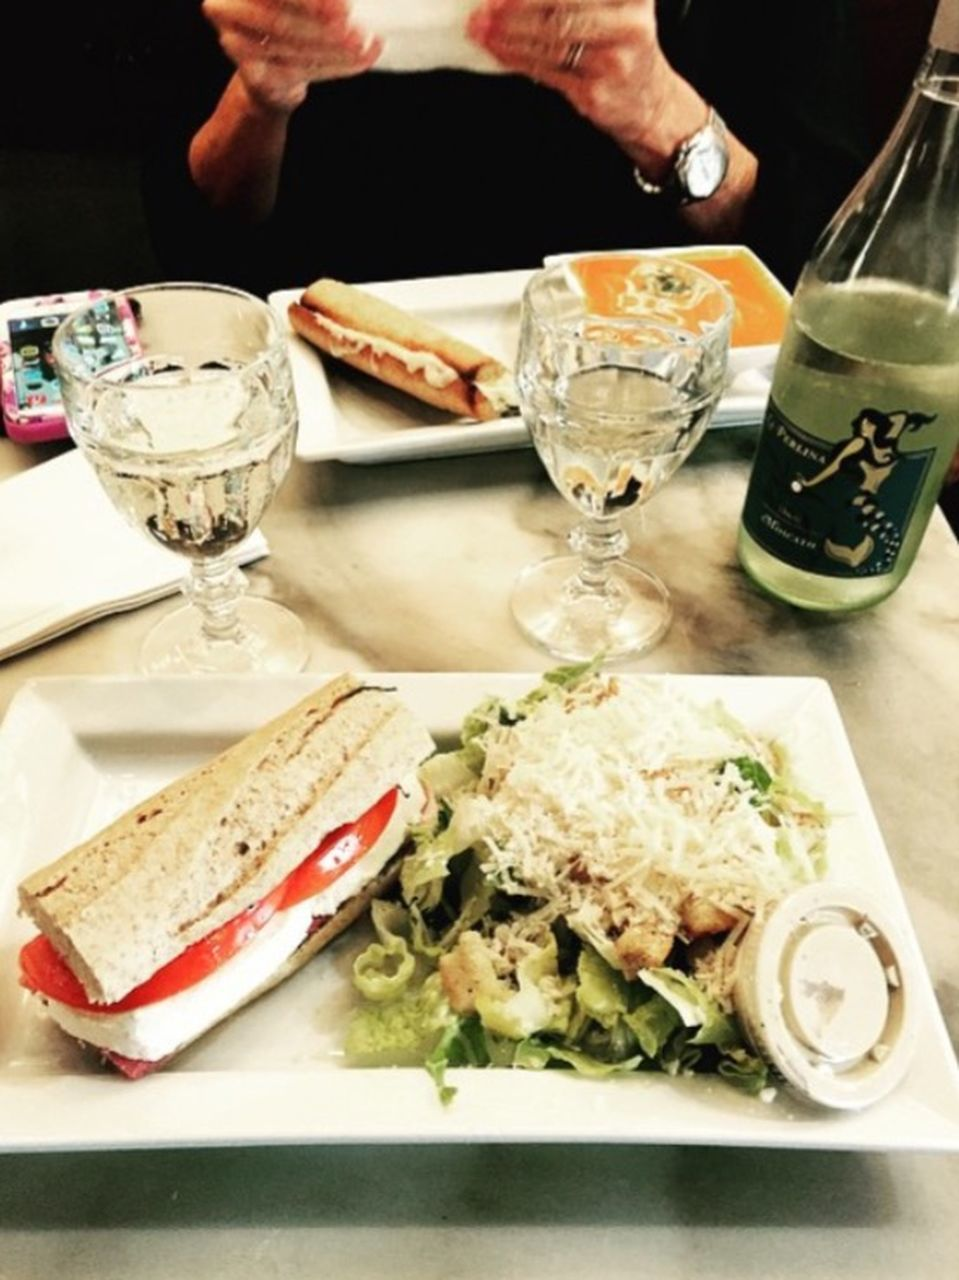 food and drink, human hand, food, plate, table, drinking glass, human body part, two people, bread, holding, healthy eating, drink, ready-to-eat, indoors, close-up, wineglass, sandwich, freshness, adult, adults only, people, day